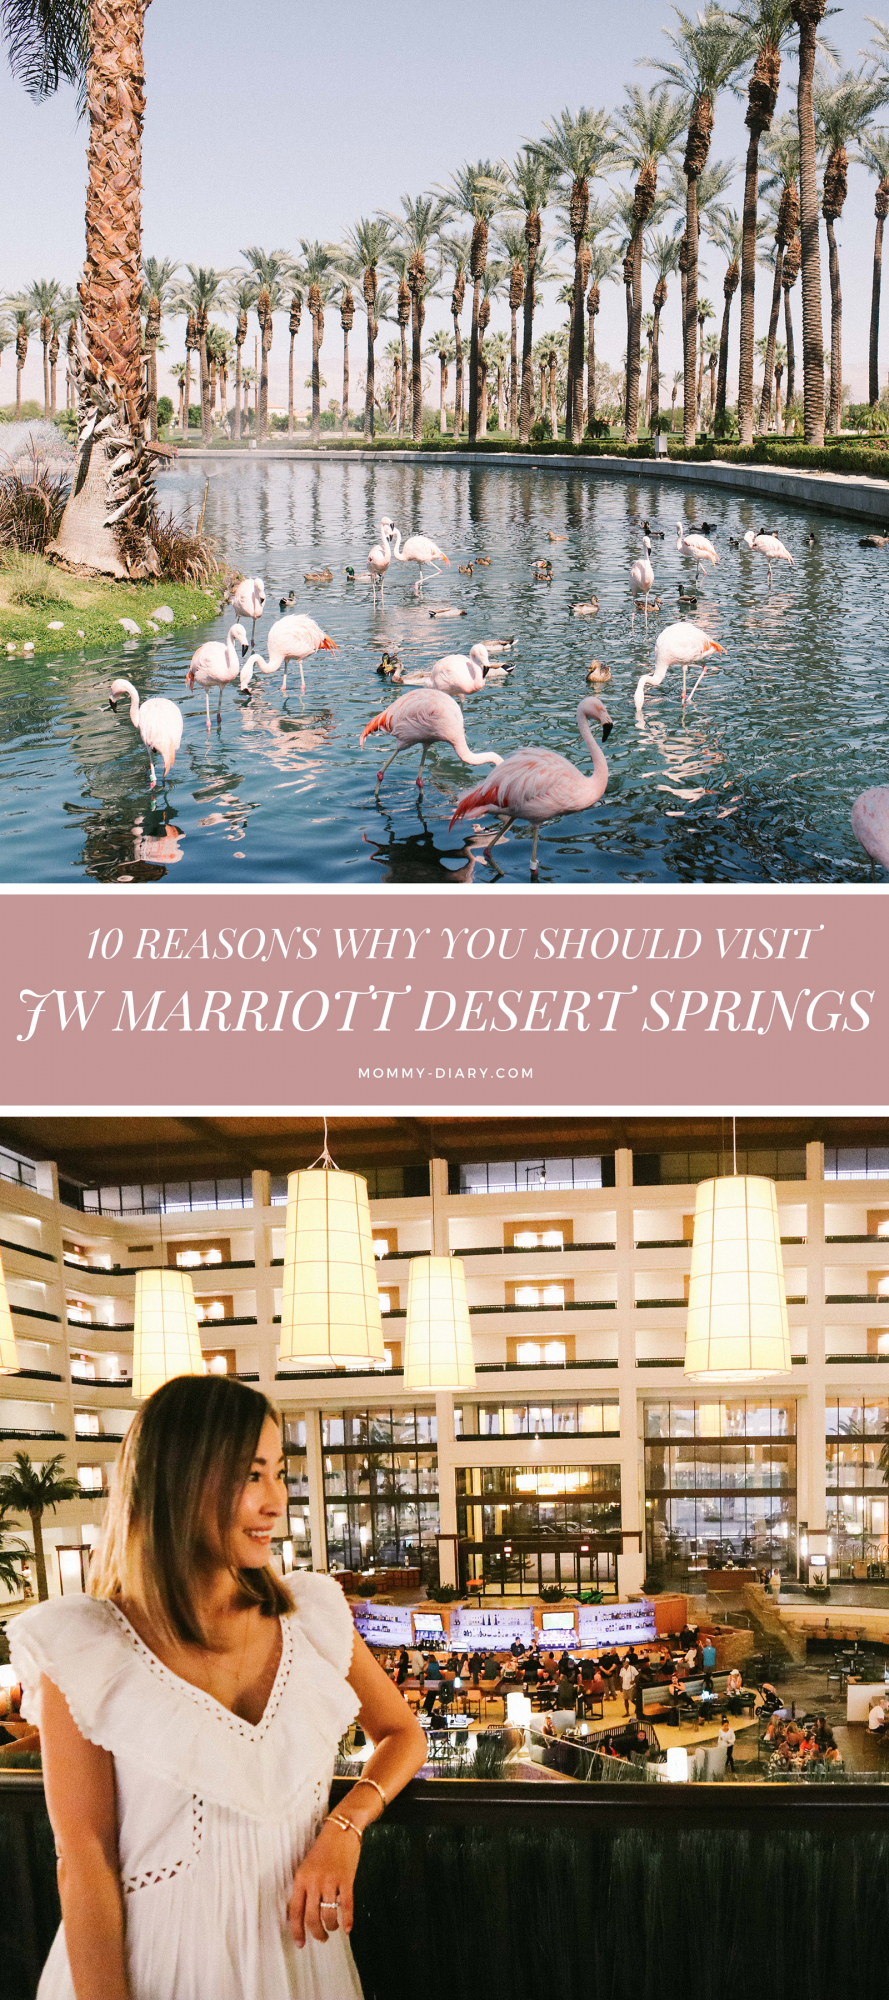 jw-marriott-desert-springs-pinterest